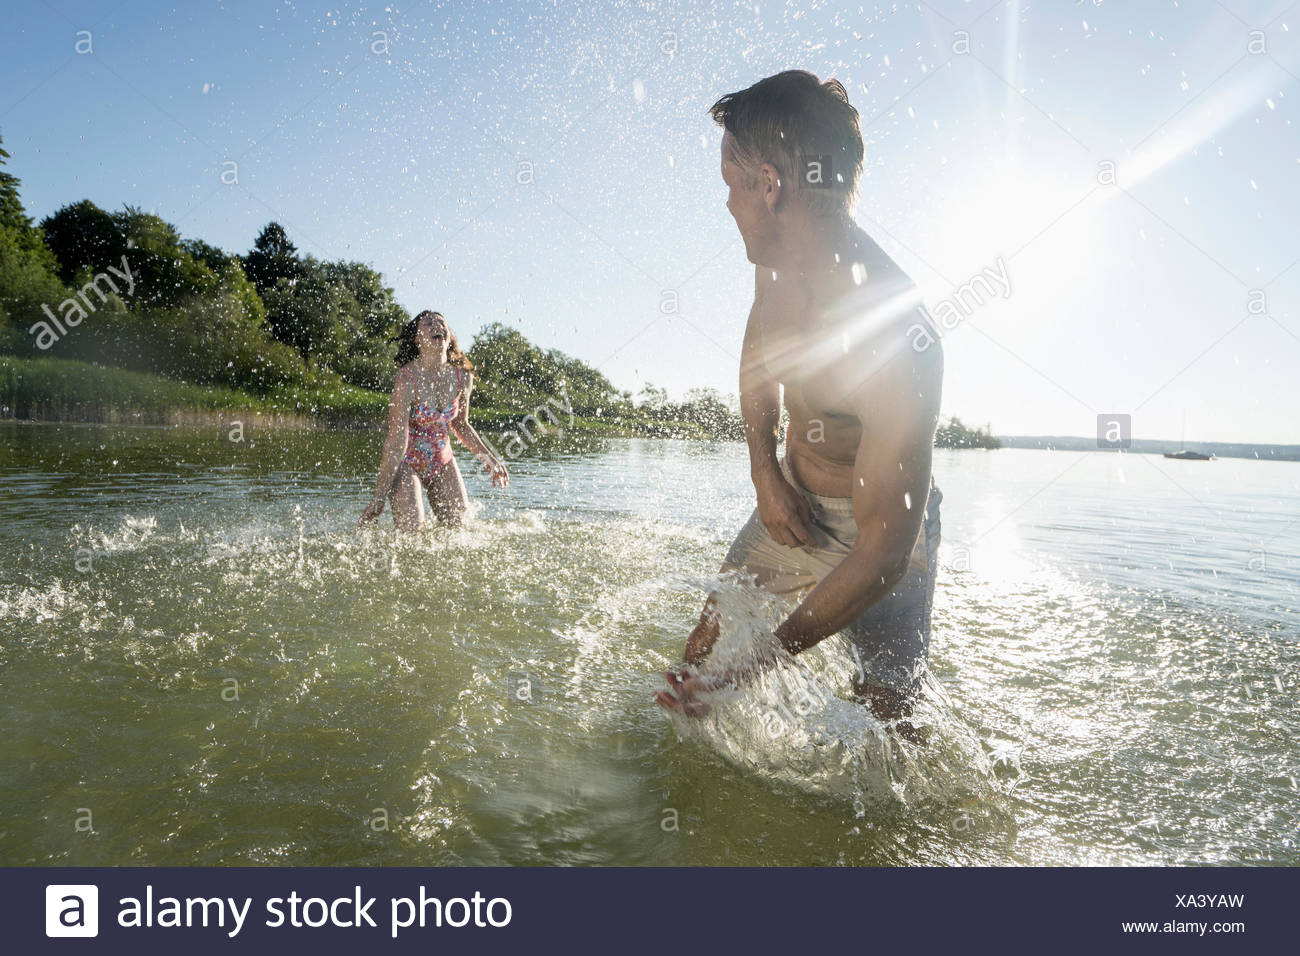 Mature couple splashing water to each other on lake, Bavaria, Germany - Stock Image